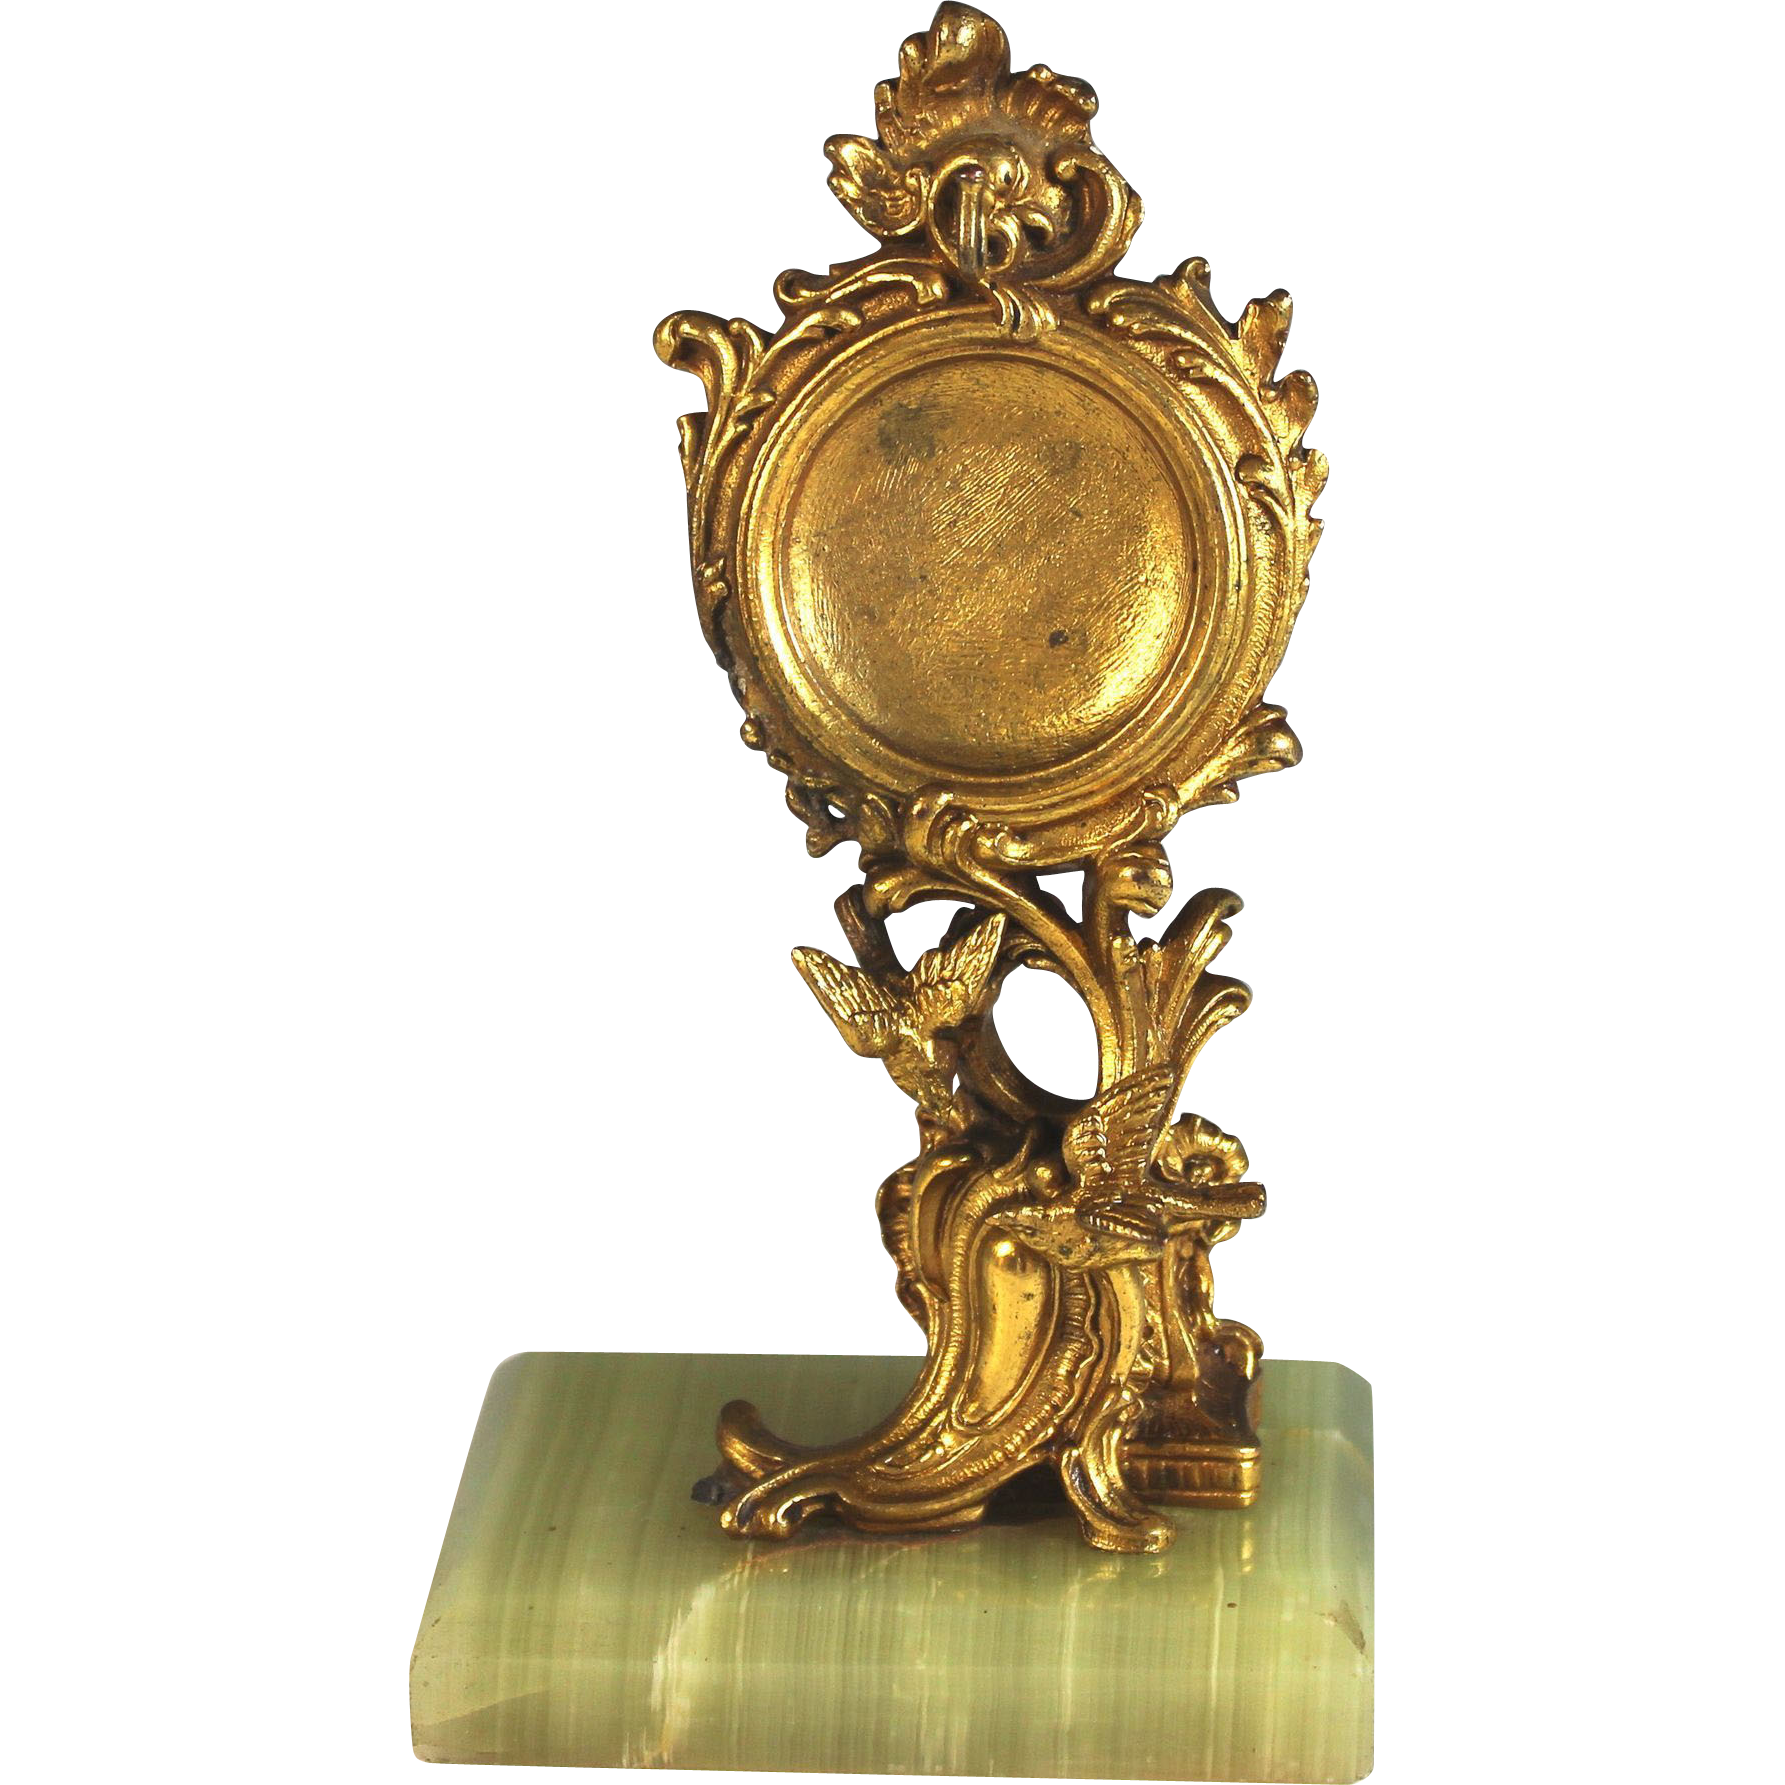 Antique french bronze dore porte montre watch stand with for Porte french